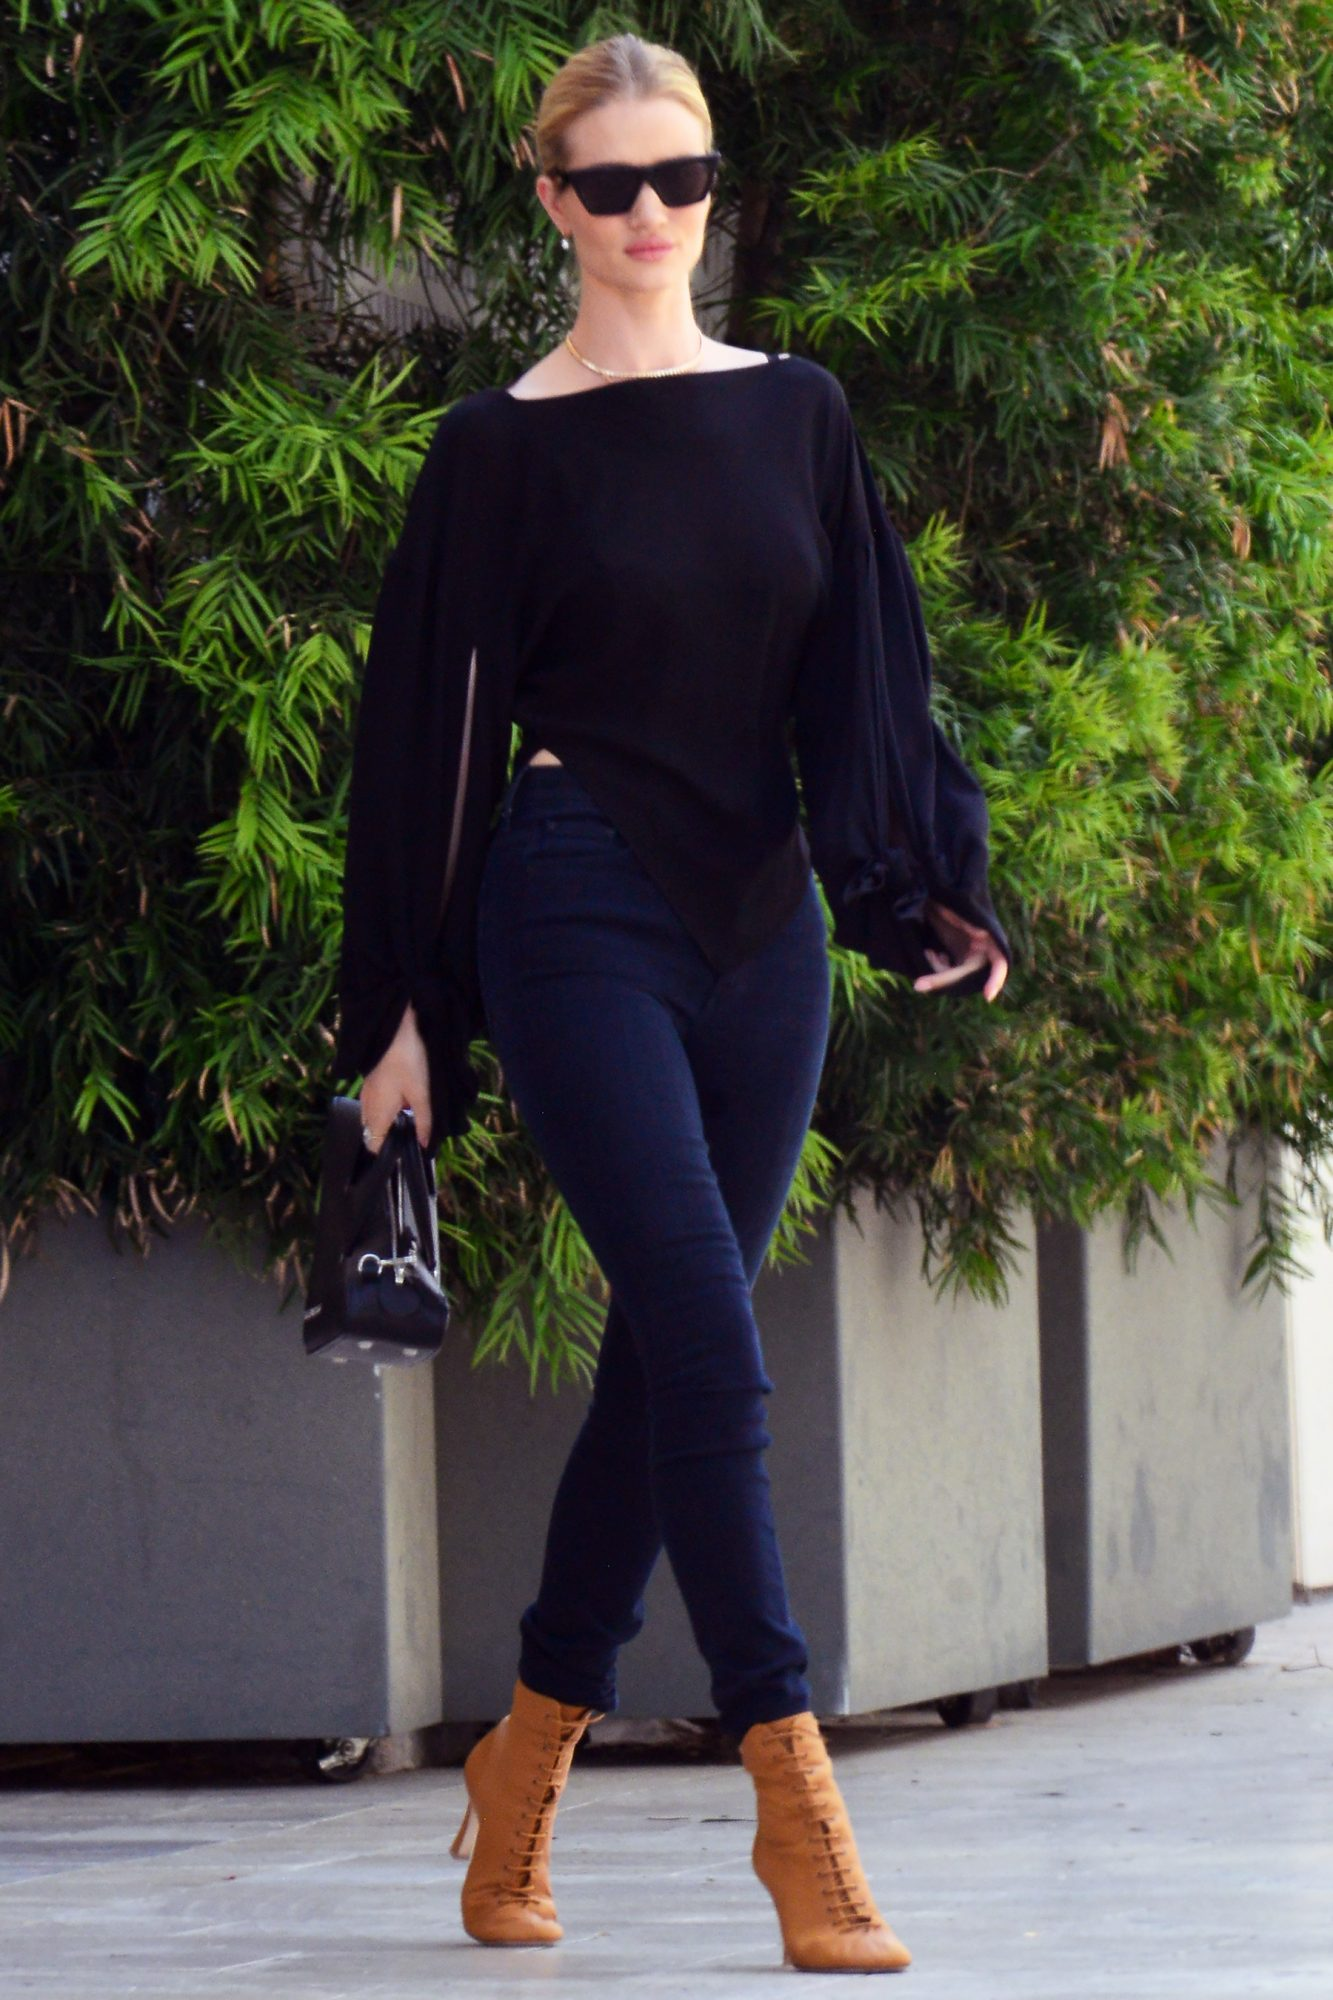 EXCLUSIVE: Rosie Huntington-Whiteley shows off her designer bag as she heads to a meeting in Beverly Hills, Ca